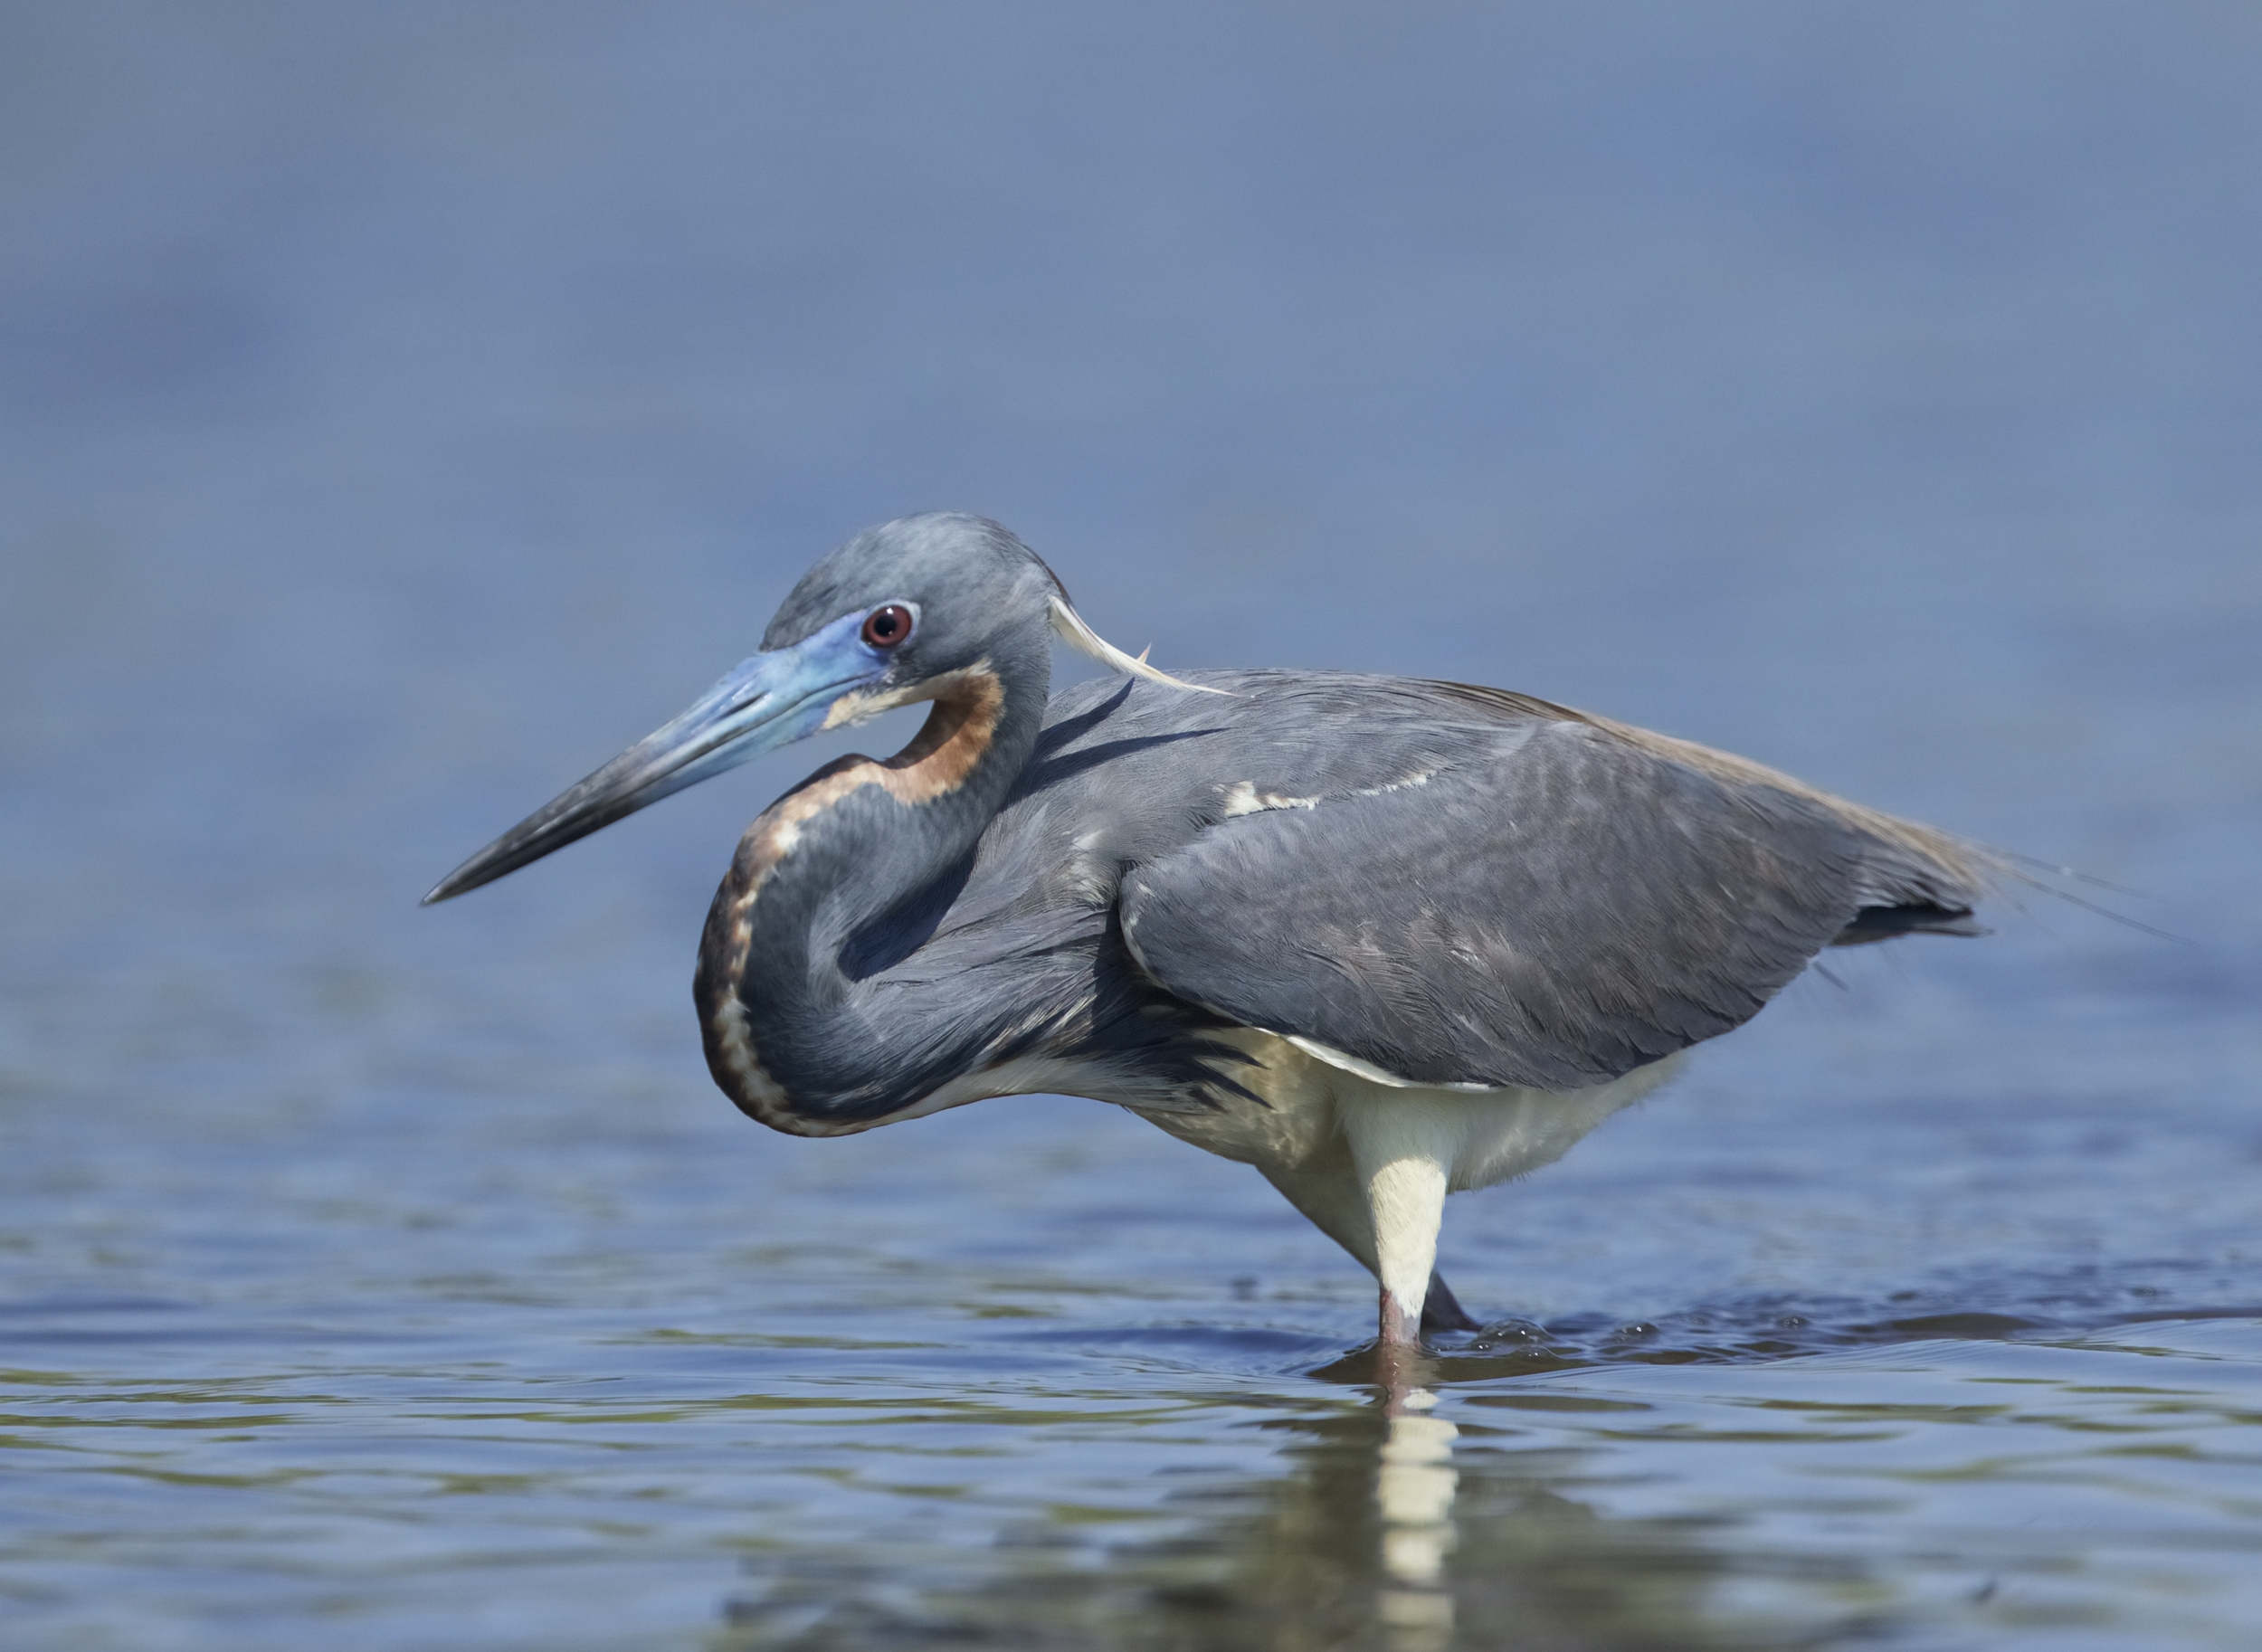 The Tricolored Heron begins its daily stalk for breakfast minnows..